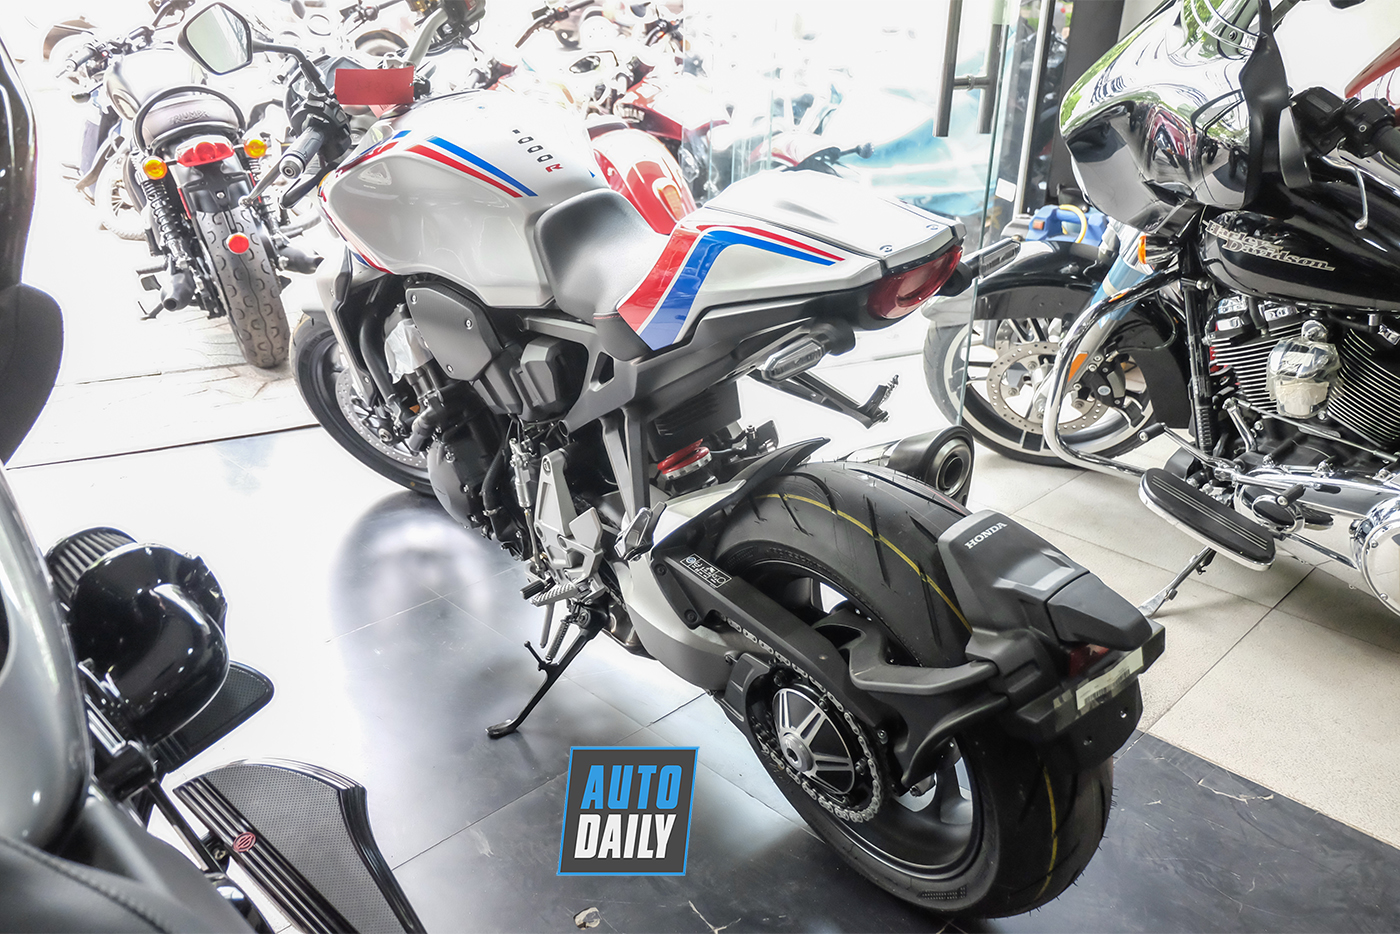 honda-cb1000r-plus-limited-edition-2019-5.jpg